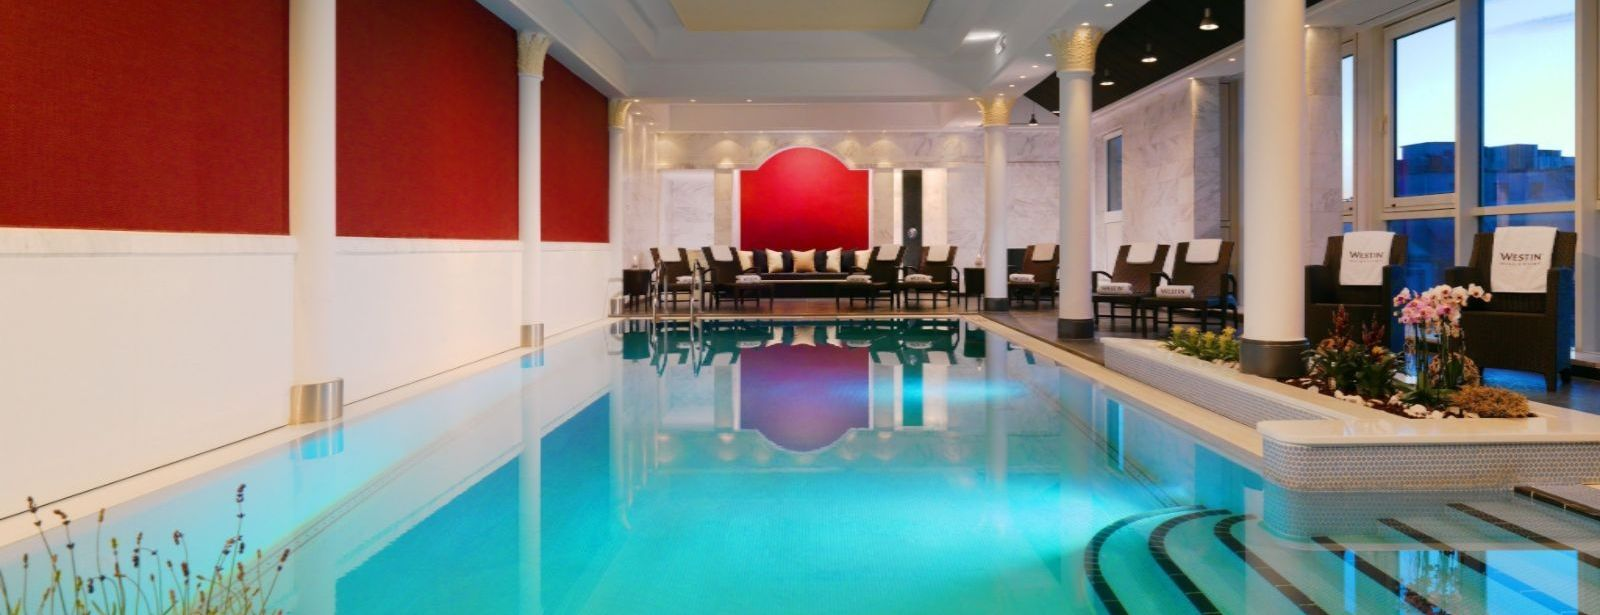 City Center Hotel Frankfurt: Westin Grand